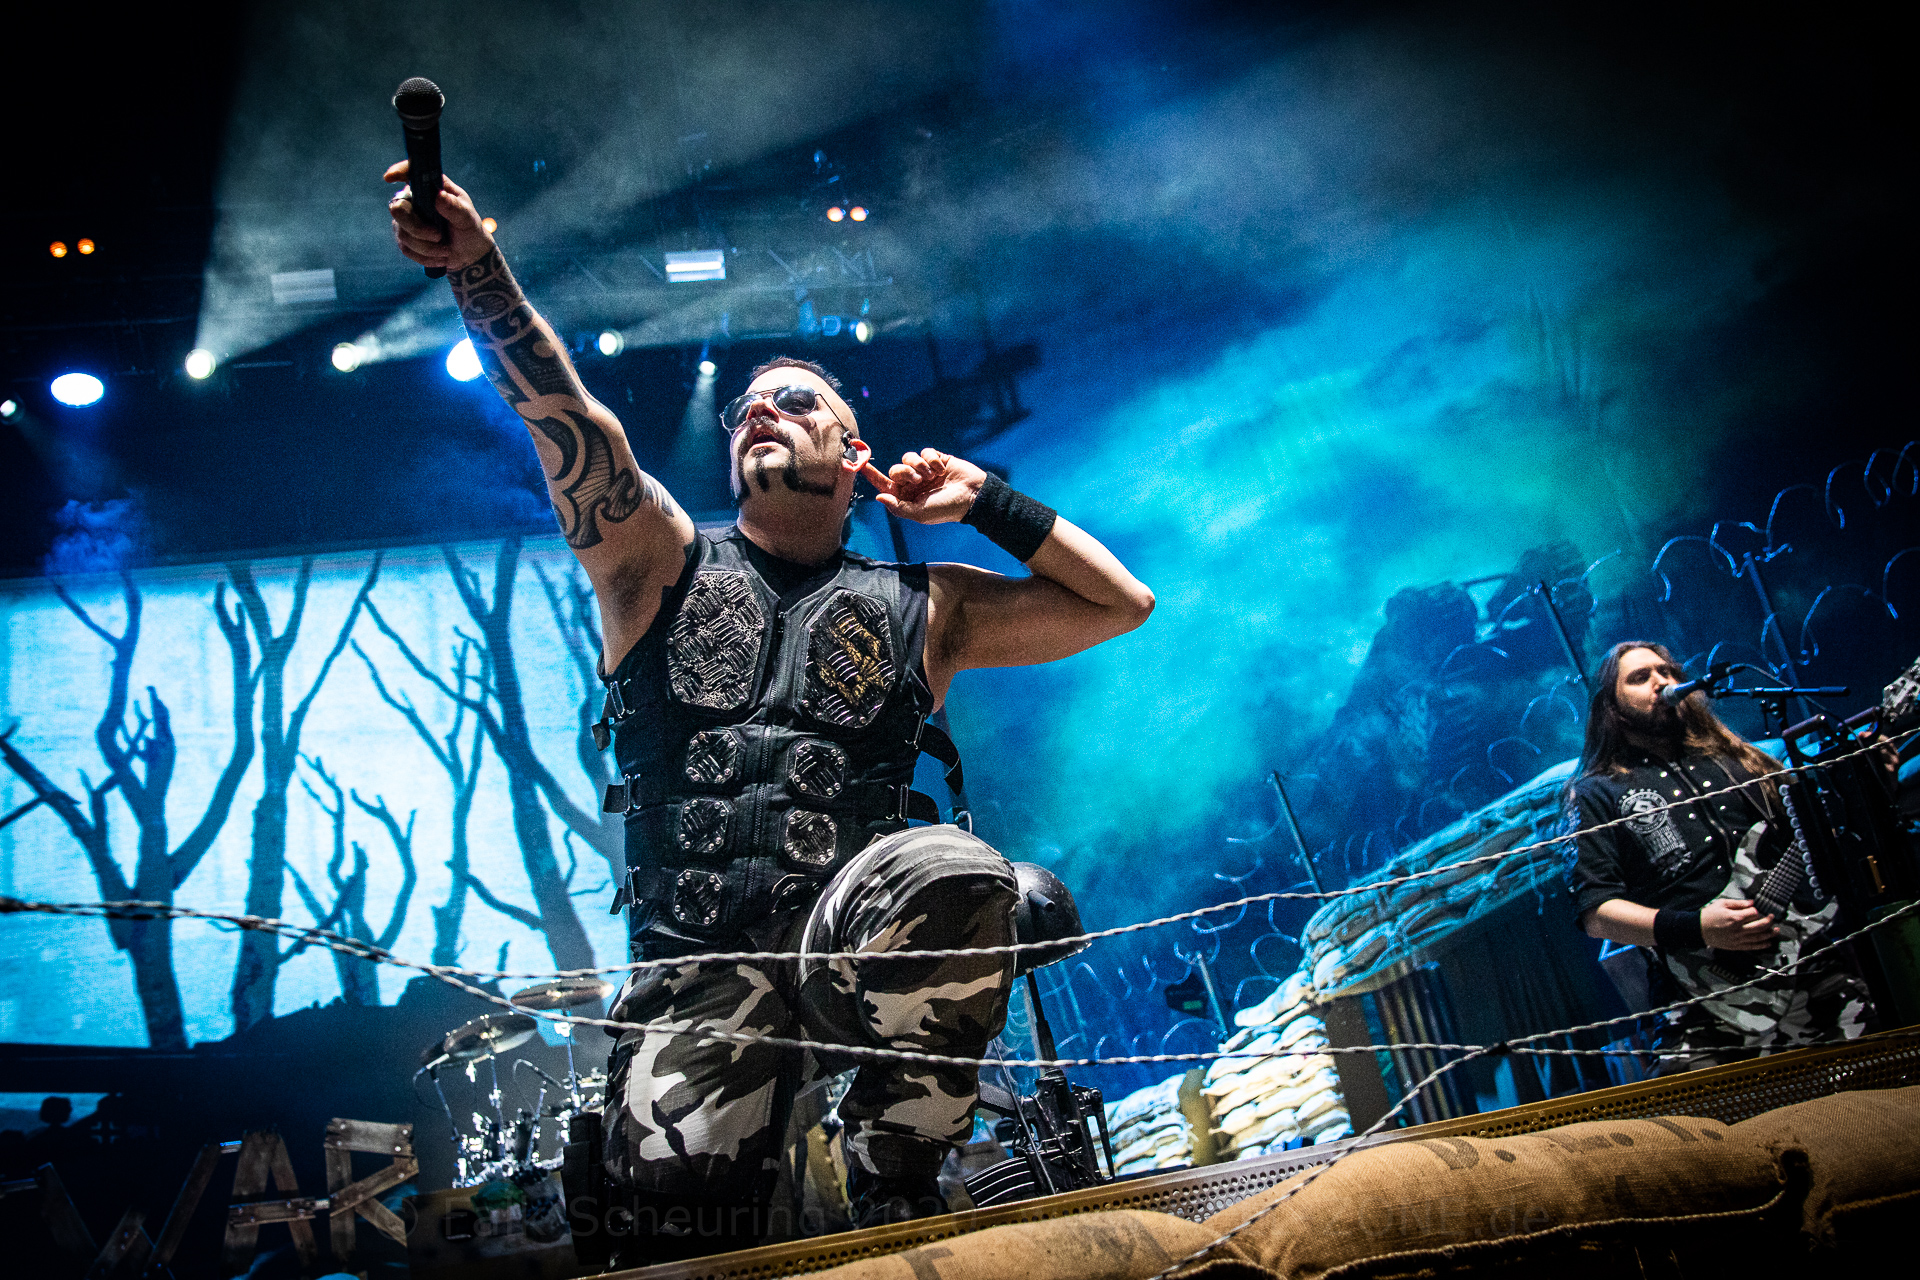 SABATON - The Great Tour 2020 live in Leipzig - Fotocredit Falk Scheuring